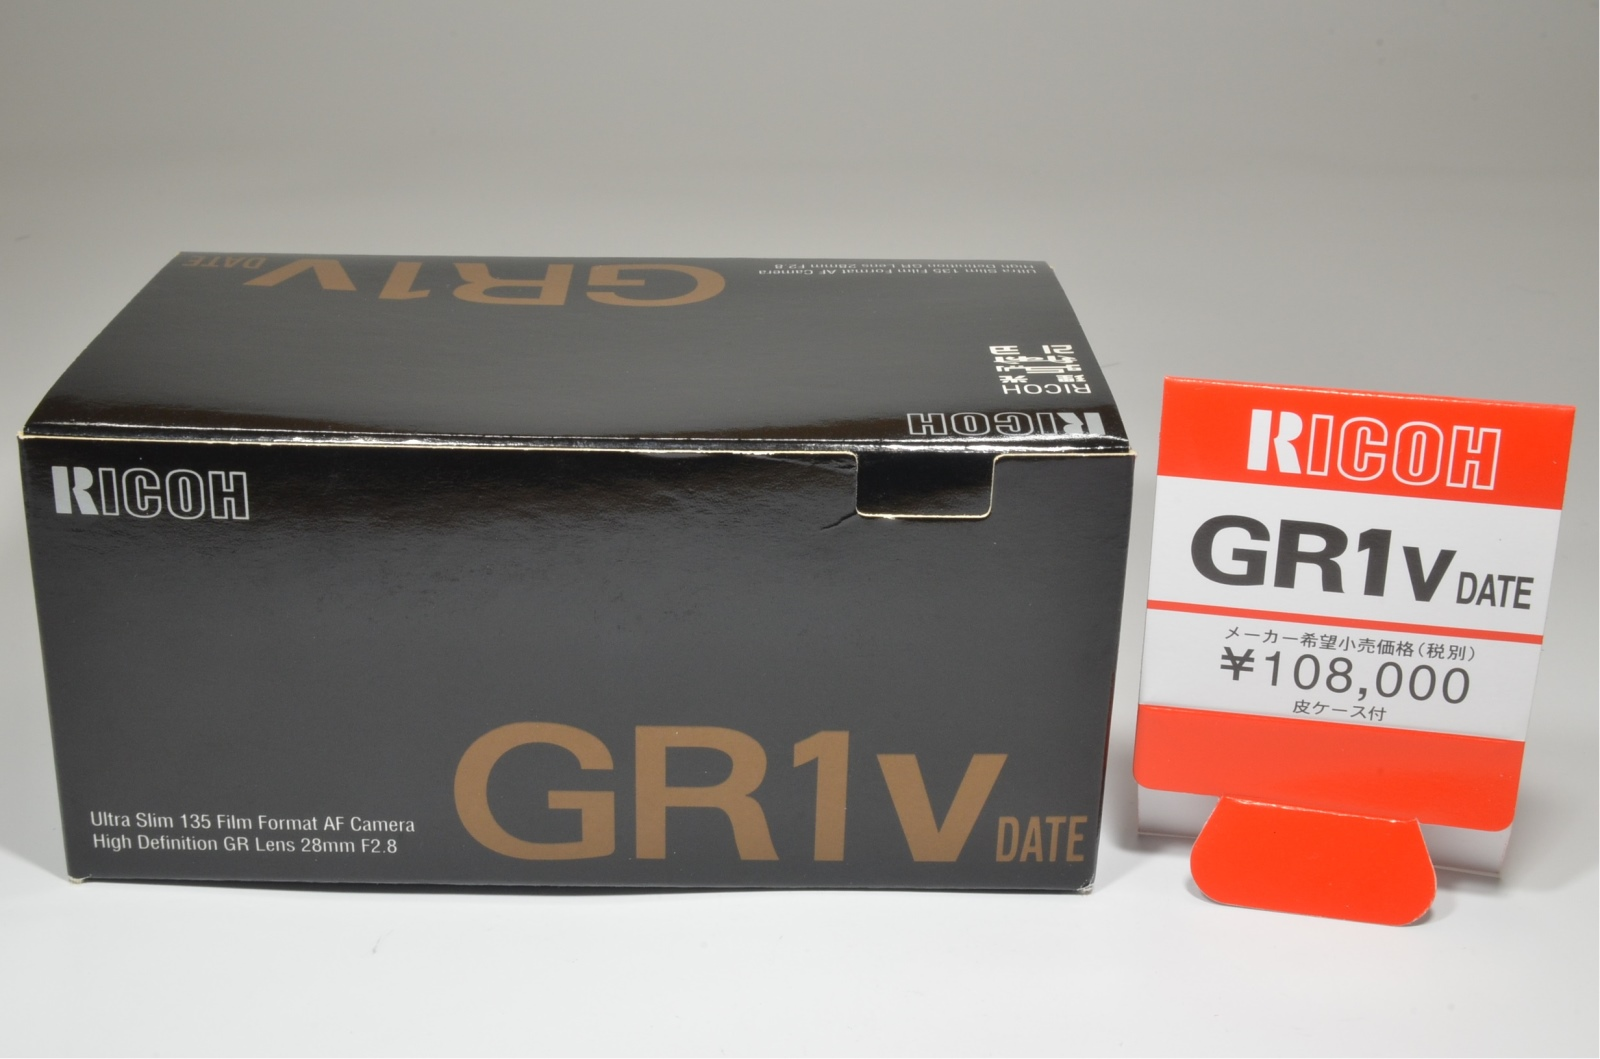 ricoh gr1v date p&s 35mm film camera 28mm f2.8 'outlet item unused' top mint!